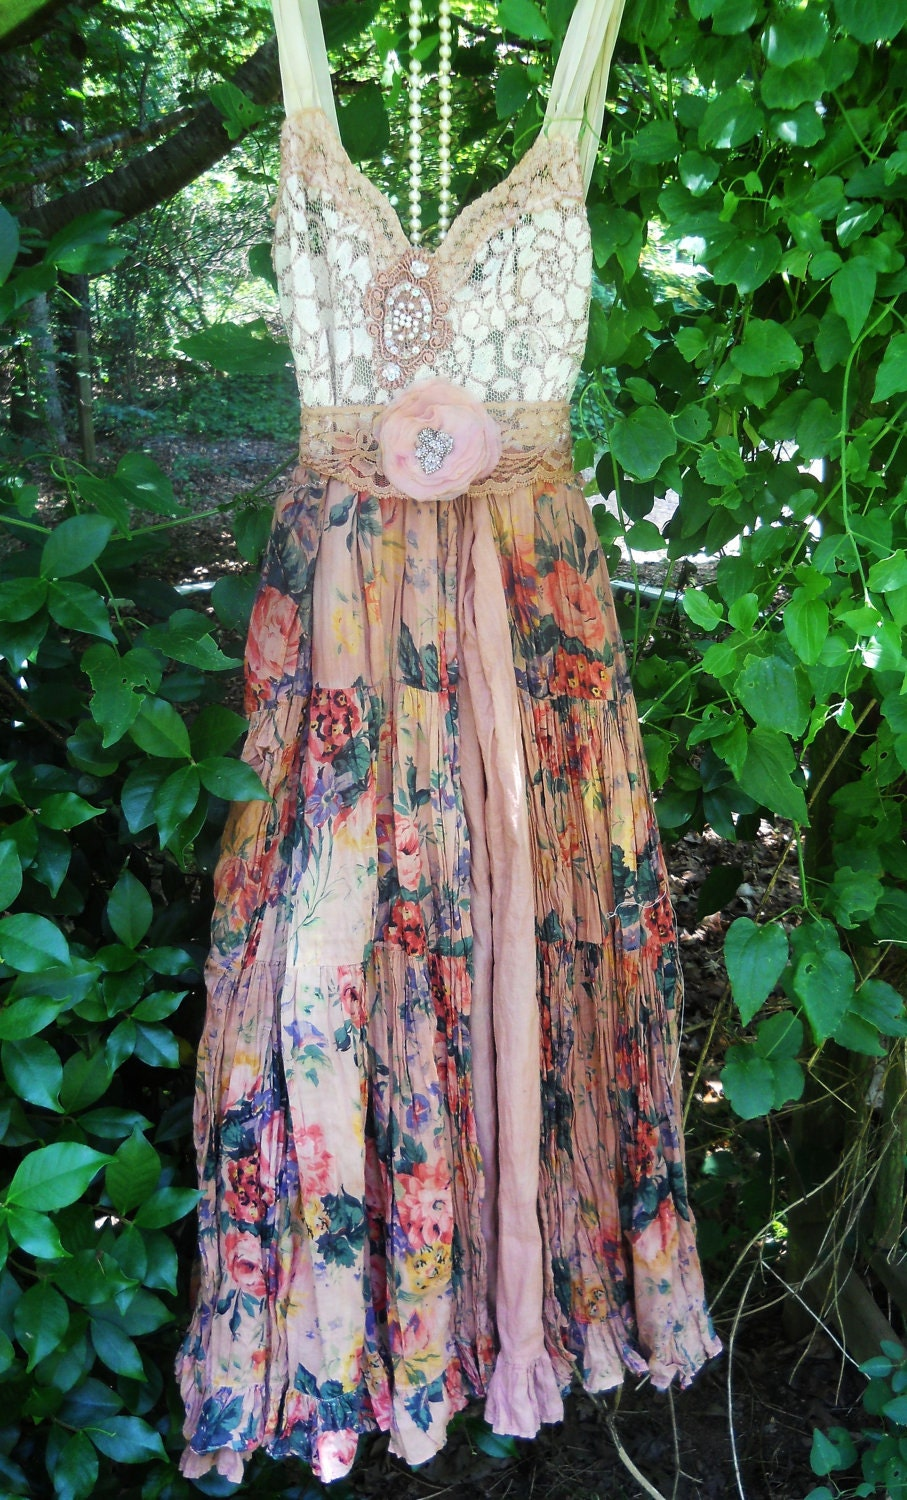 Boho Floral Dress Ruffle Cotton Tea Stained Romantic Shabby